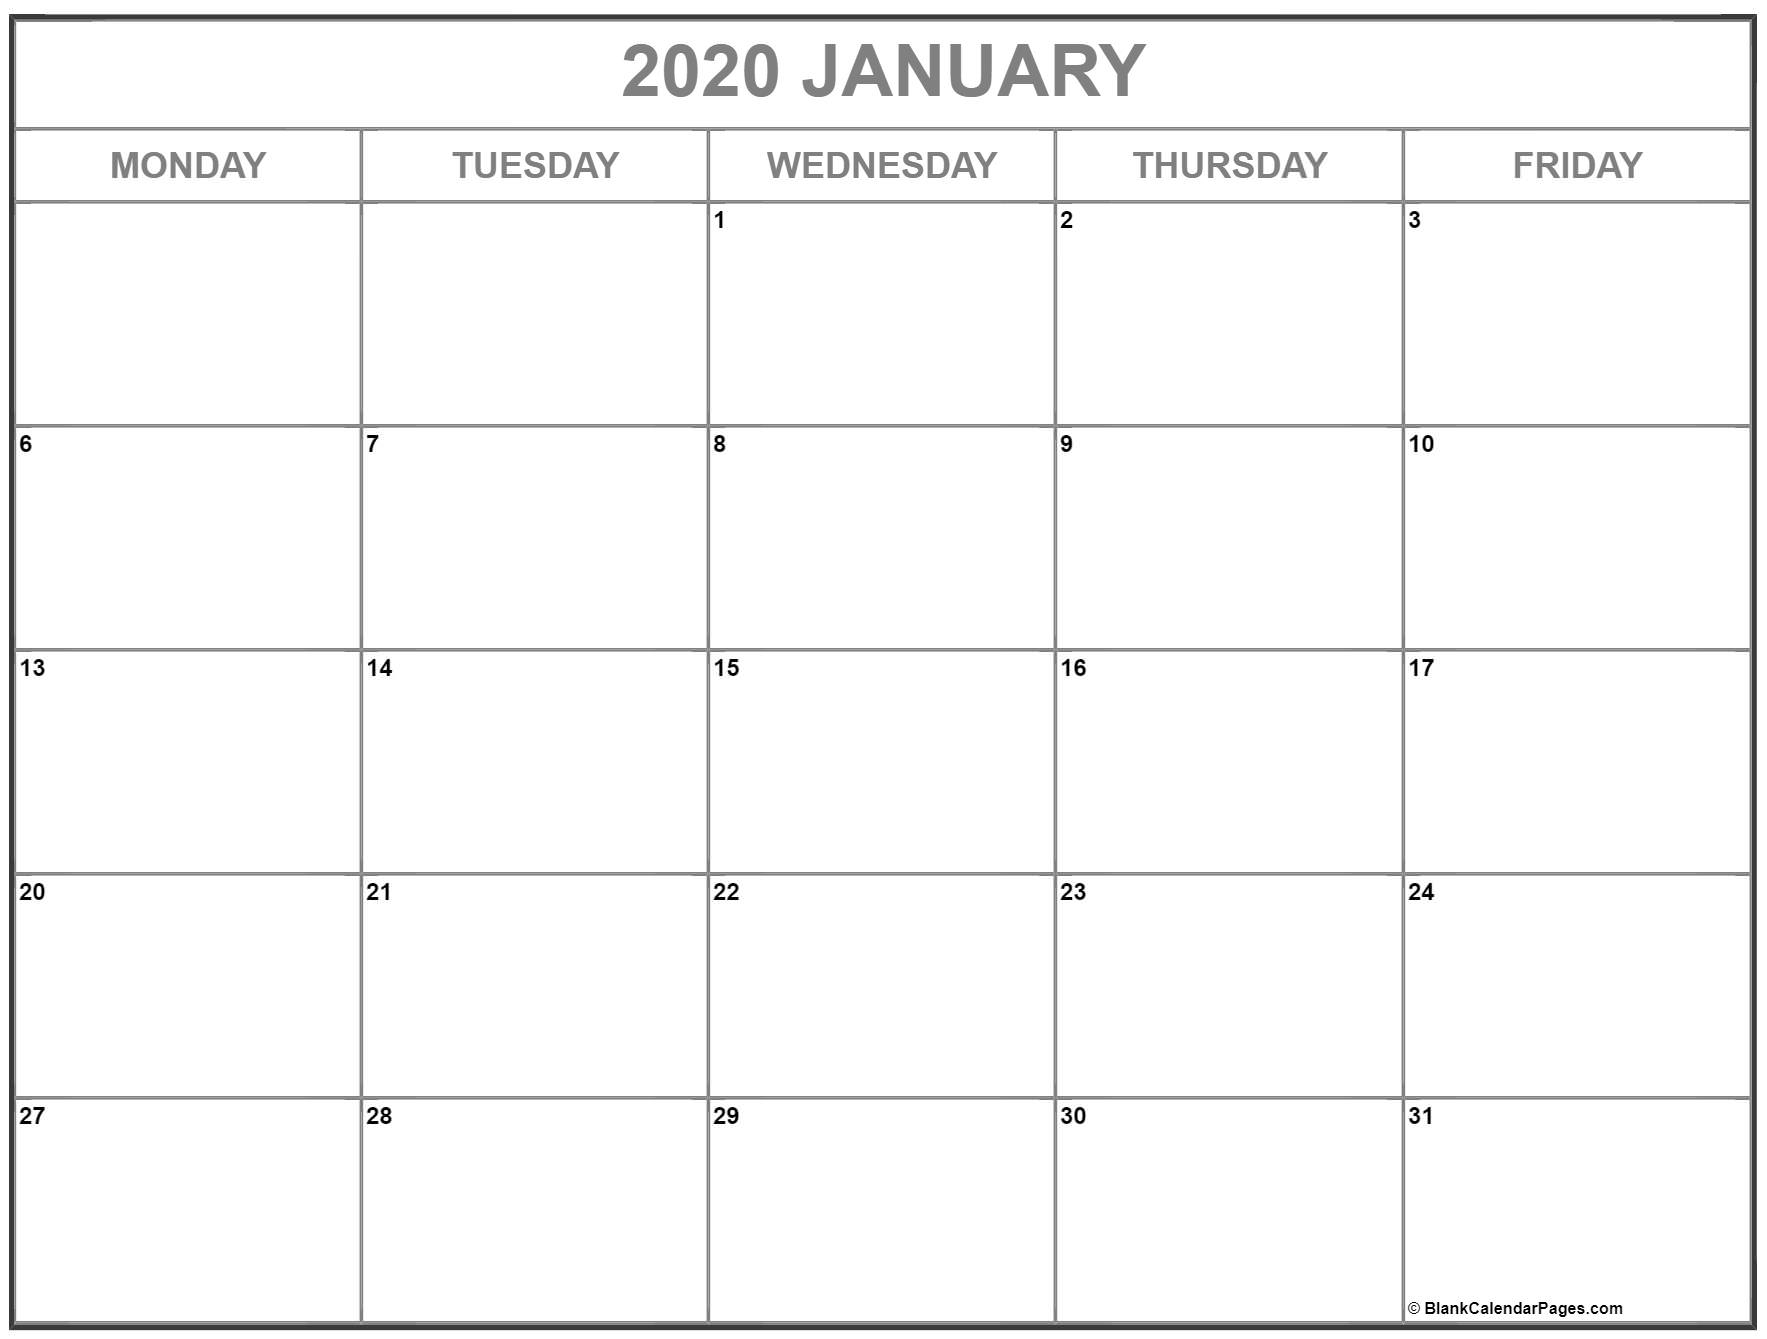 January 2020 Monday Calendar | Monday To Sunday for Monday Through Friday Calendar